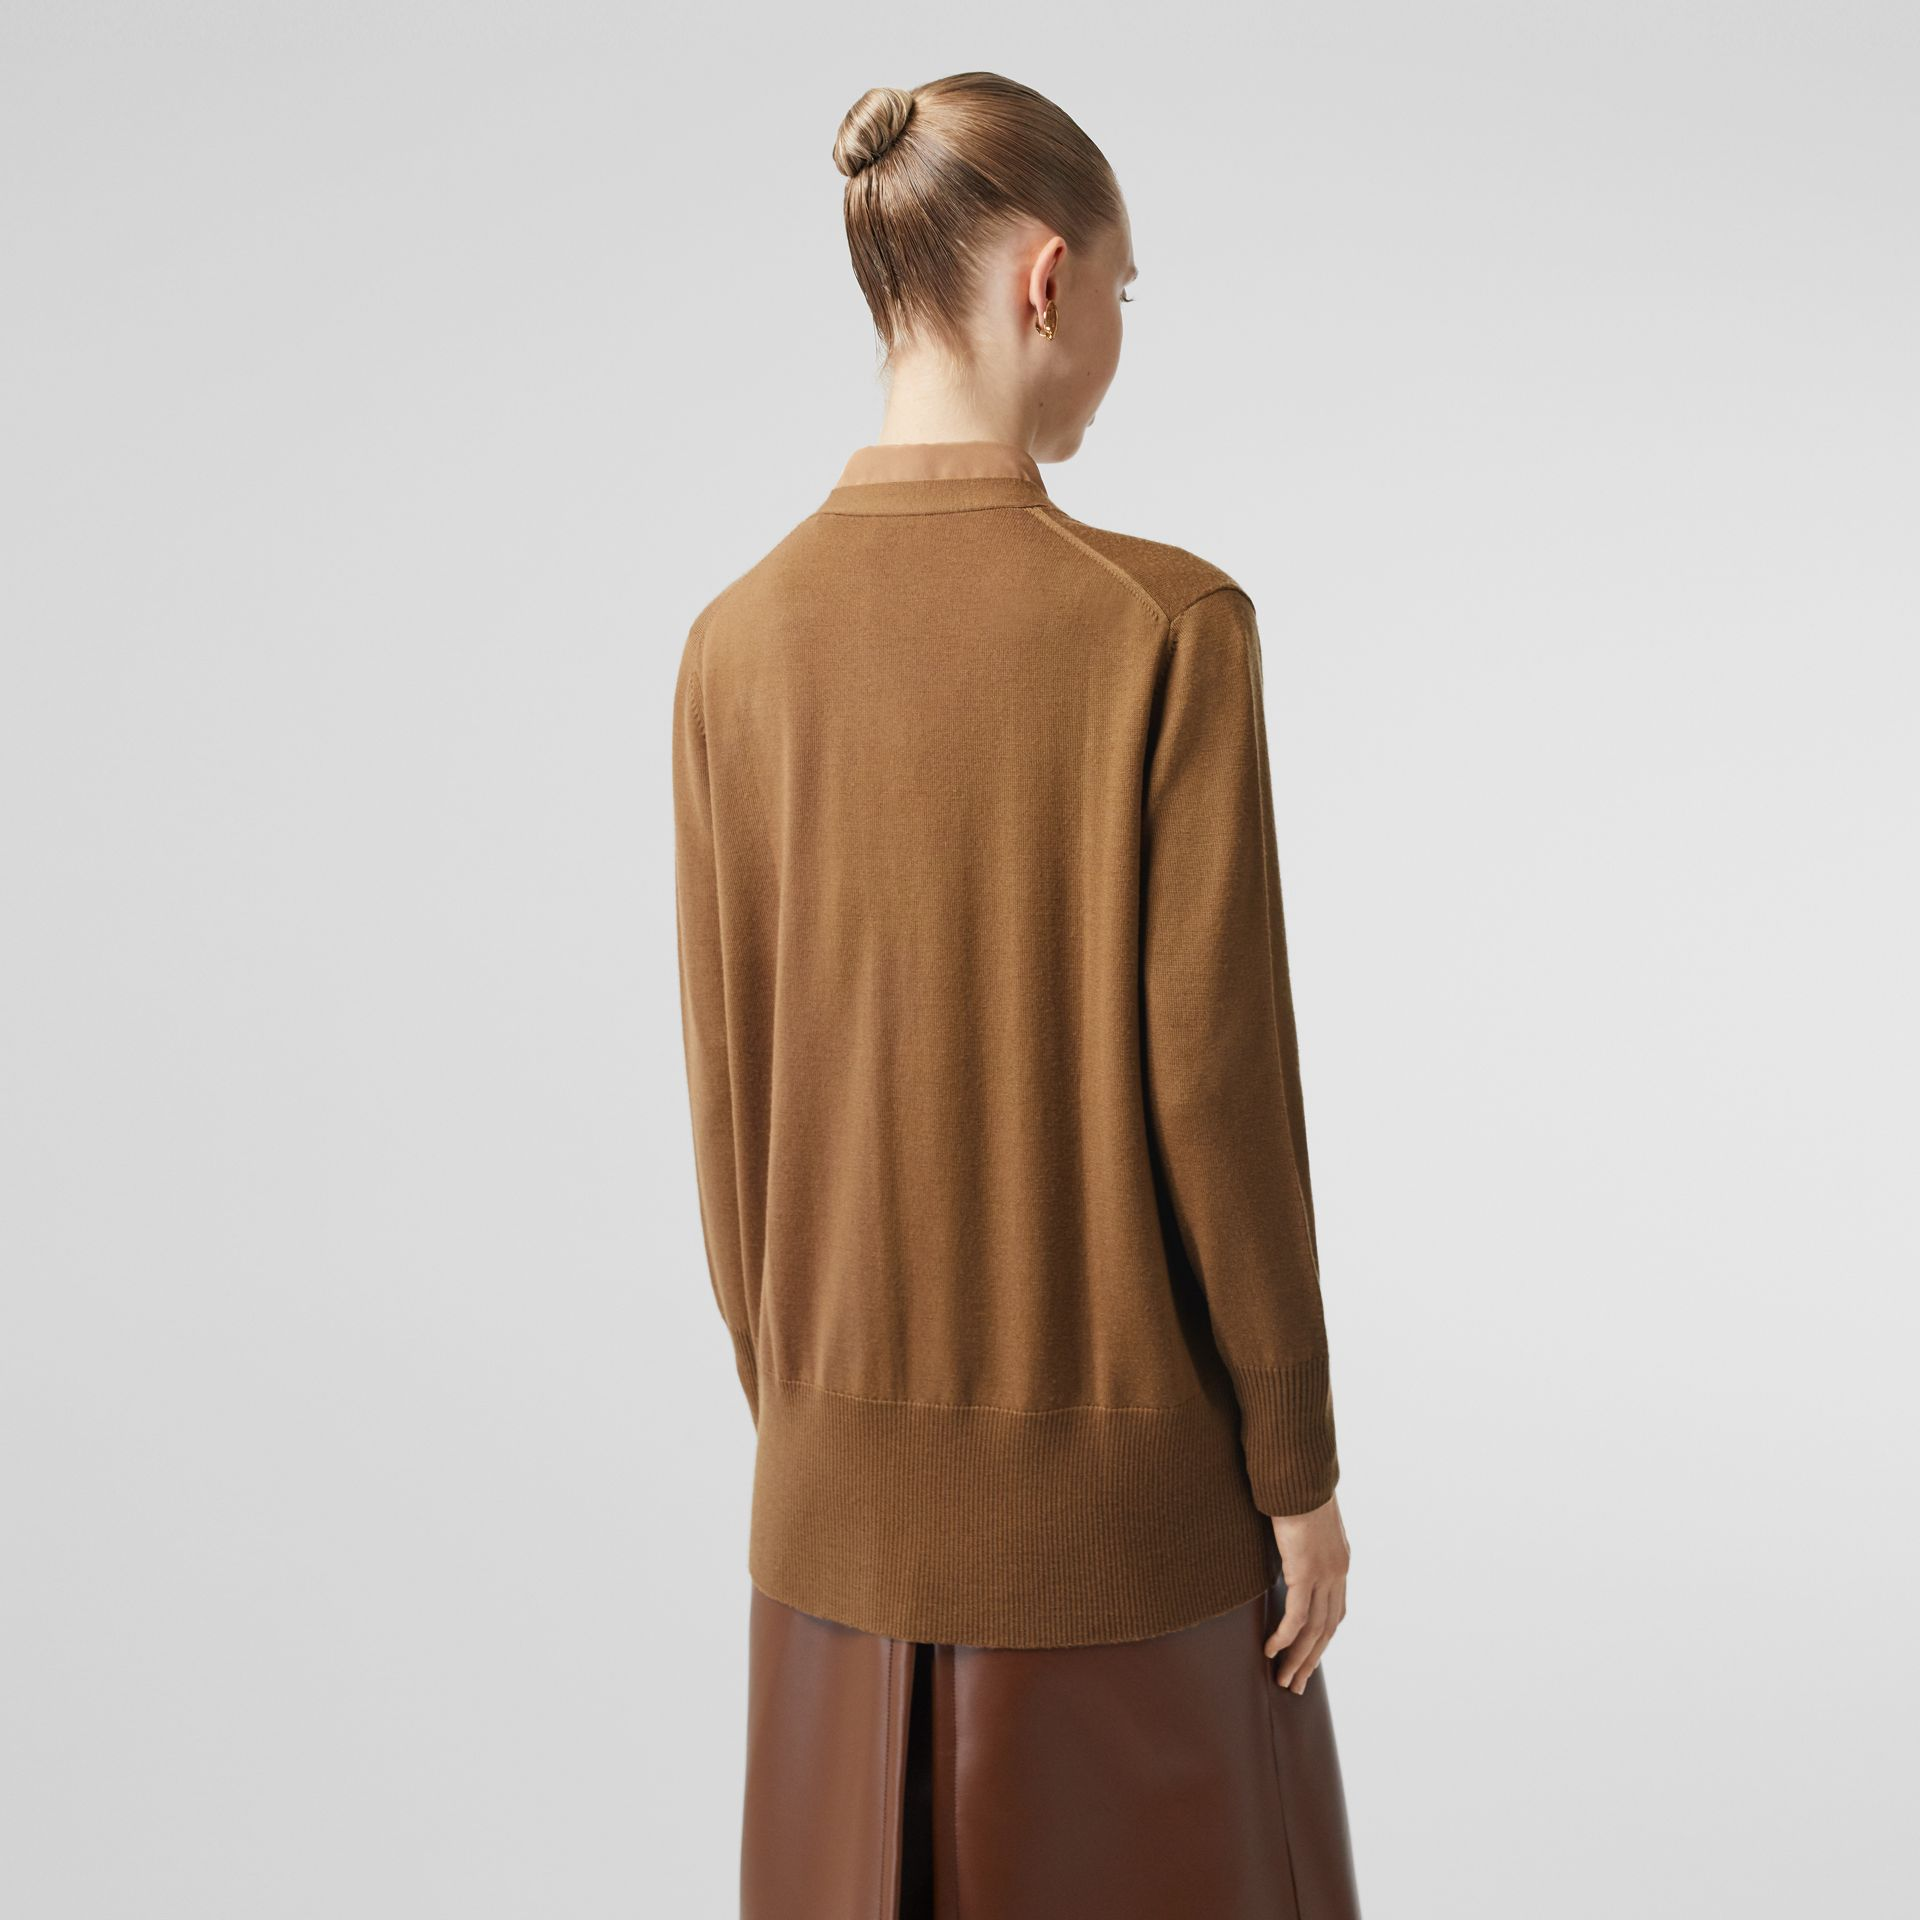 Lambskin Pocket Merino Wool Cardigan in Warm Walnut - Women | Burberry Hong Kong S.A.R - gallery image 1